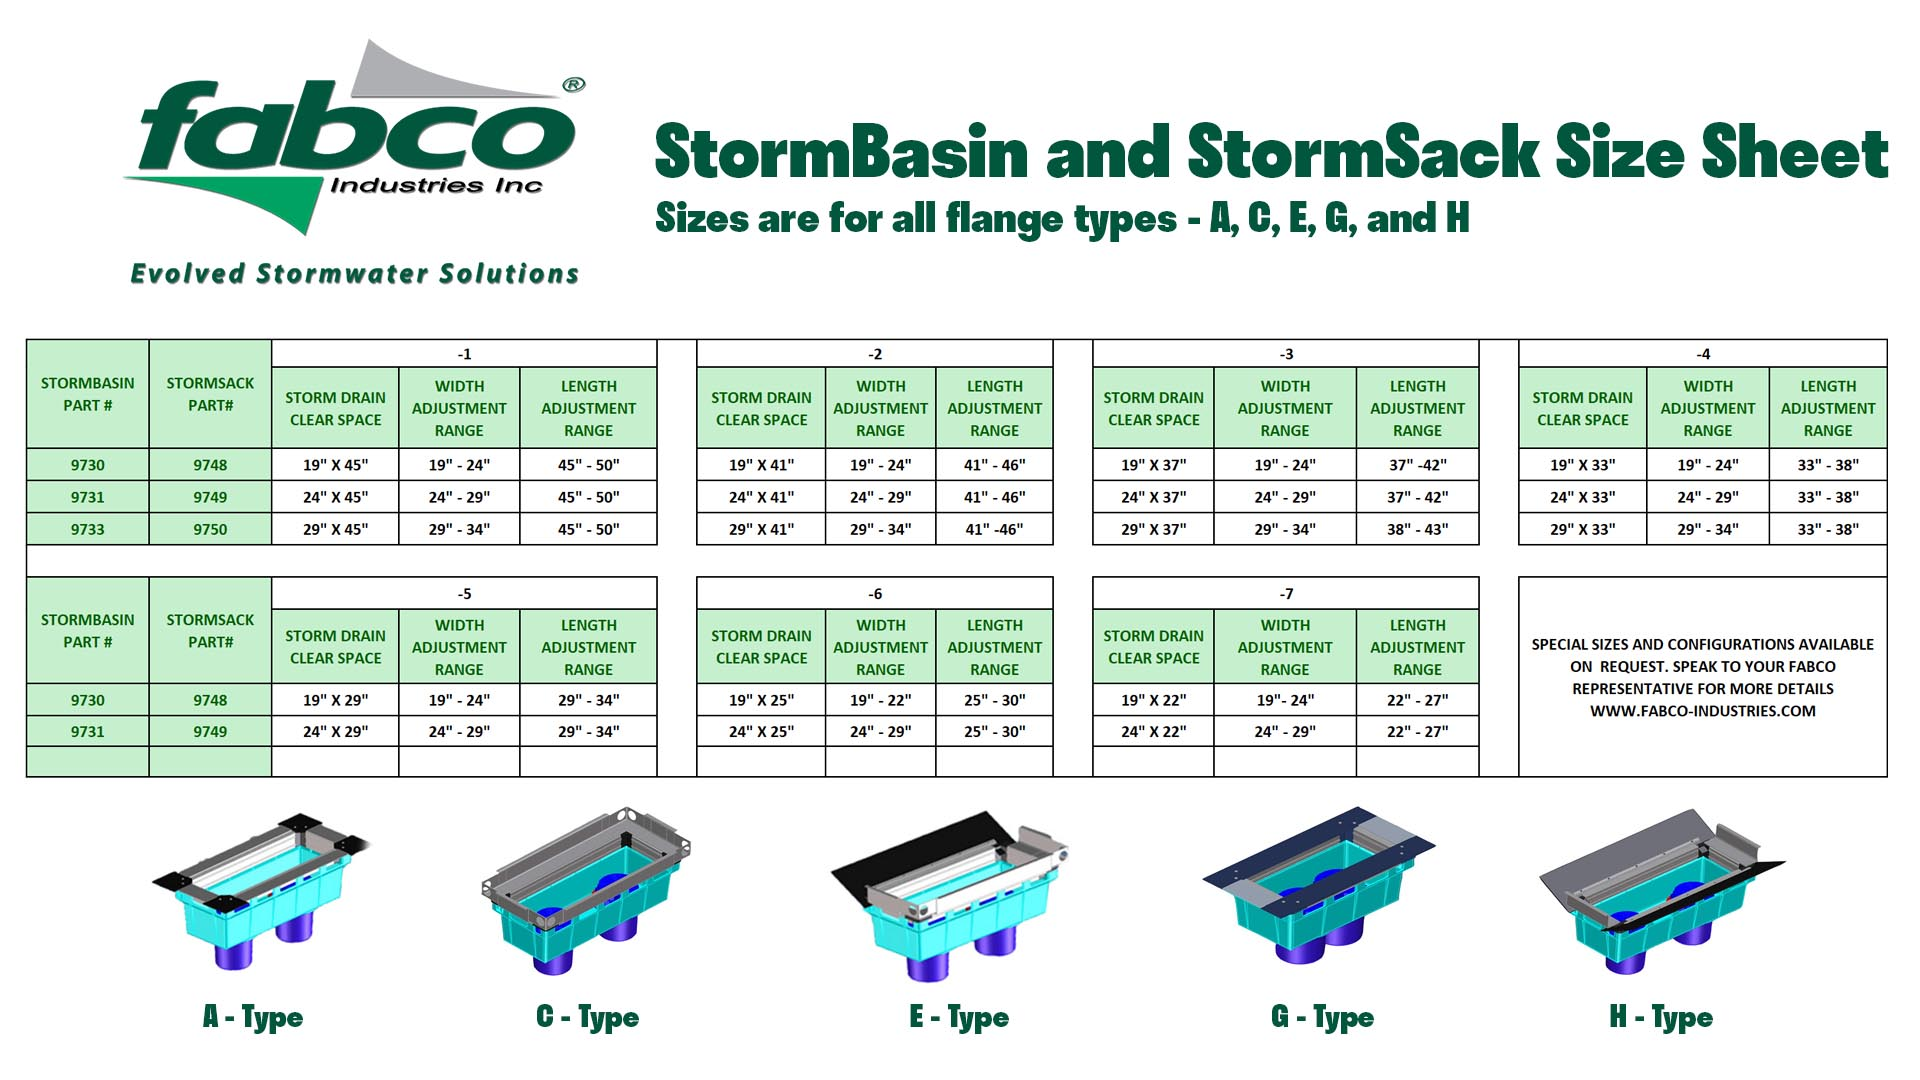 StormBasin and StormSack Sizing Chart All Flanges